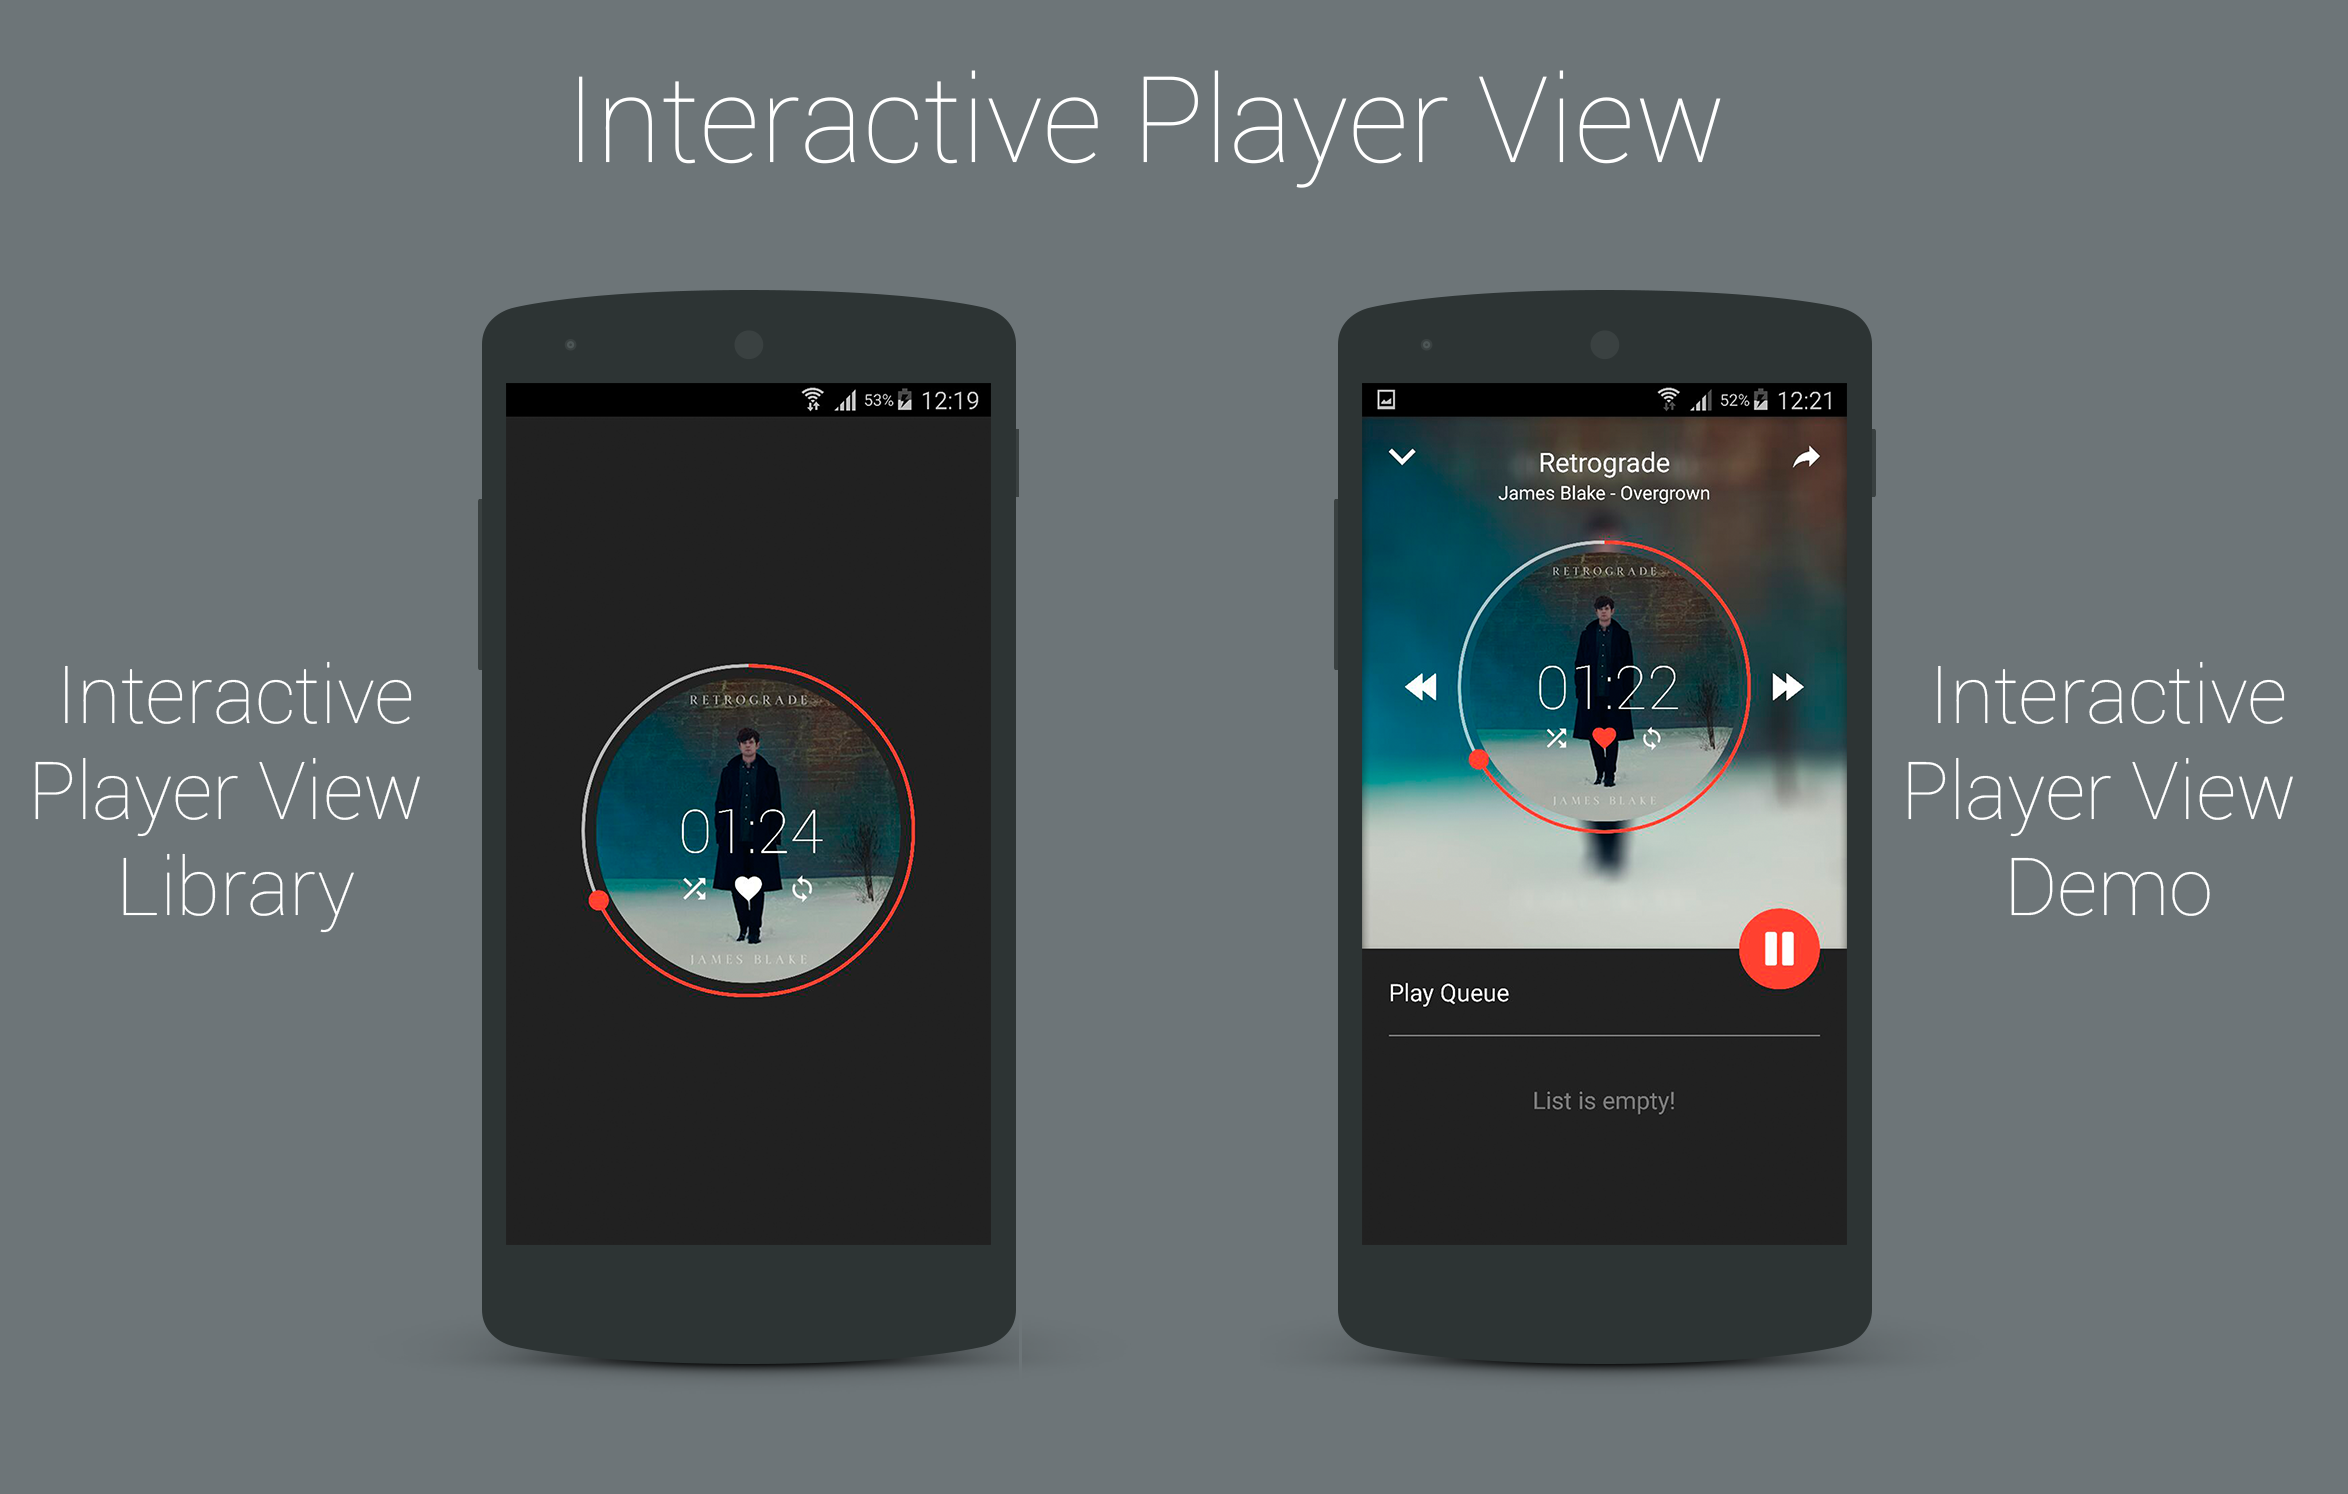 "interactiveplayerview from iammert custom android music player view a½œe€…cš""aˆa¸€a¸ae‡aaša¹‰eŸ³a"